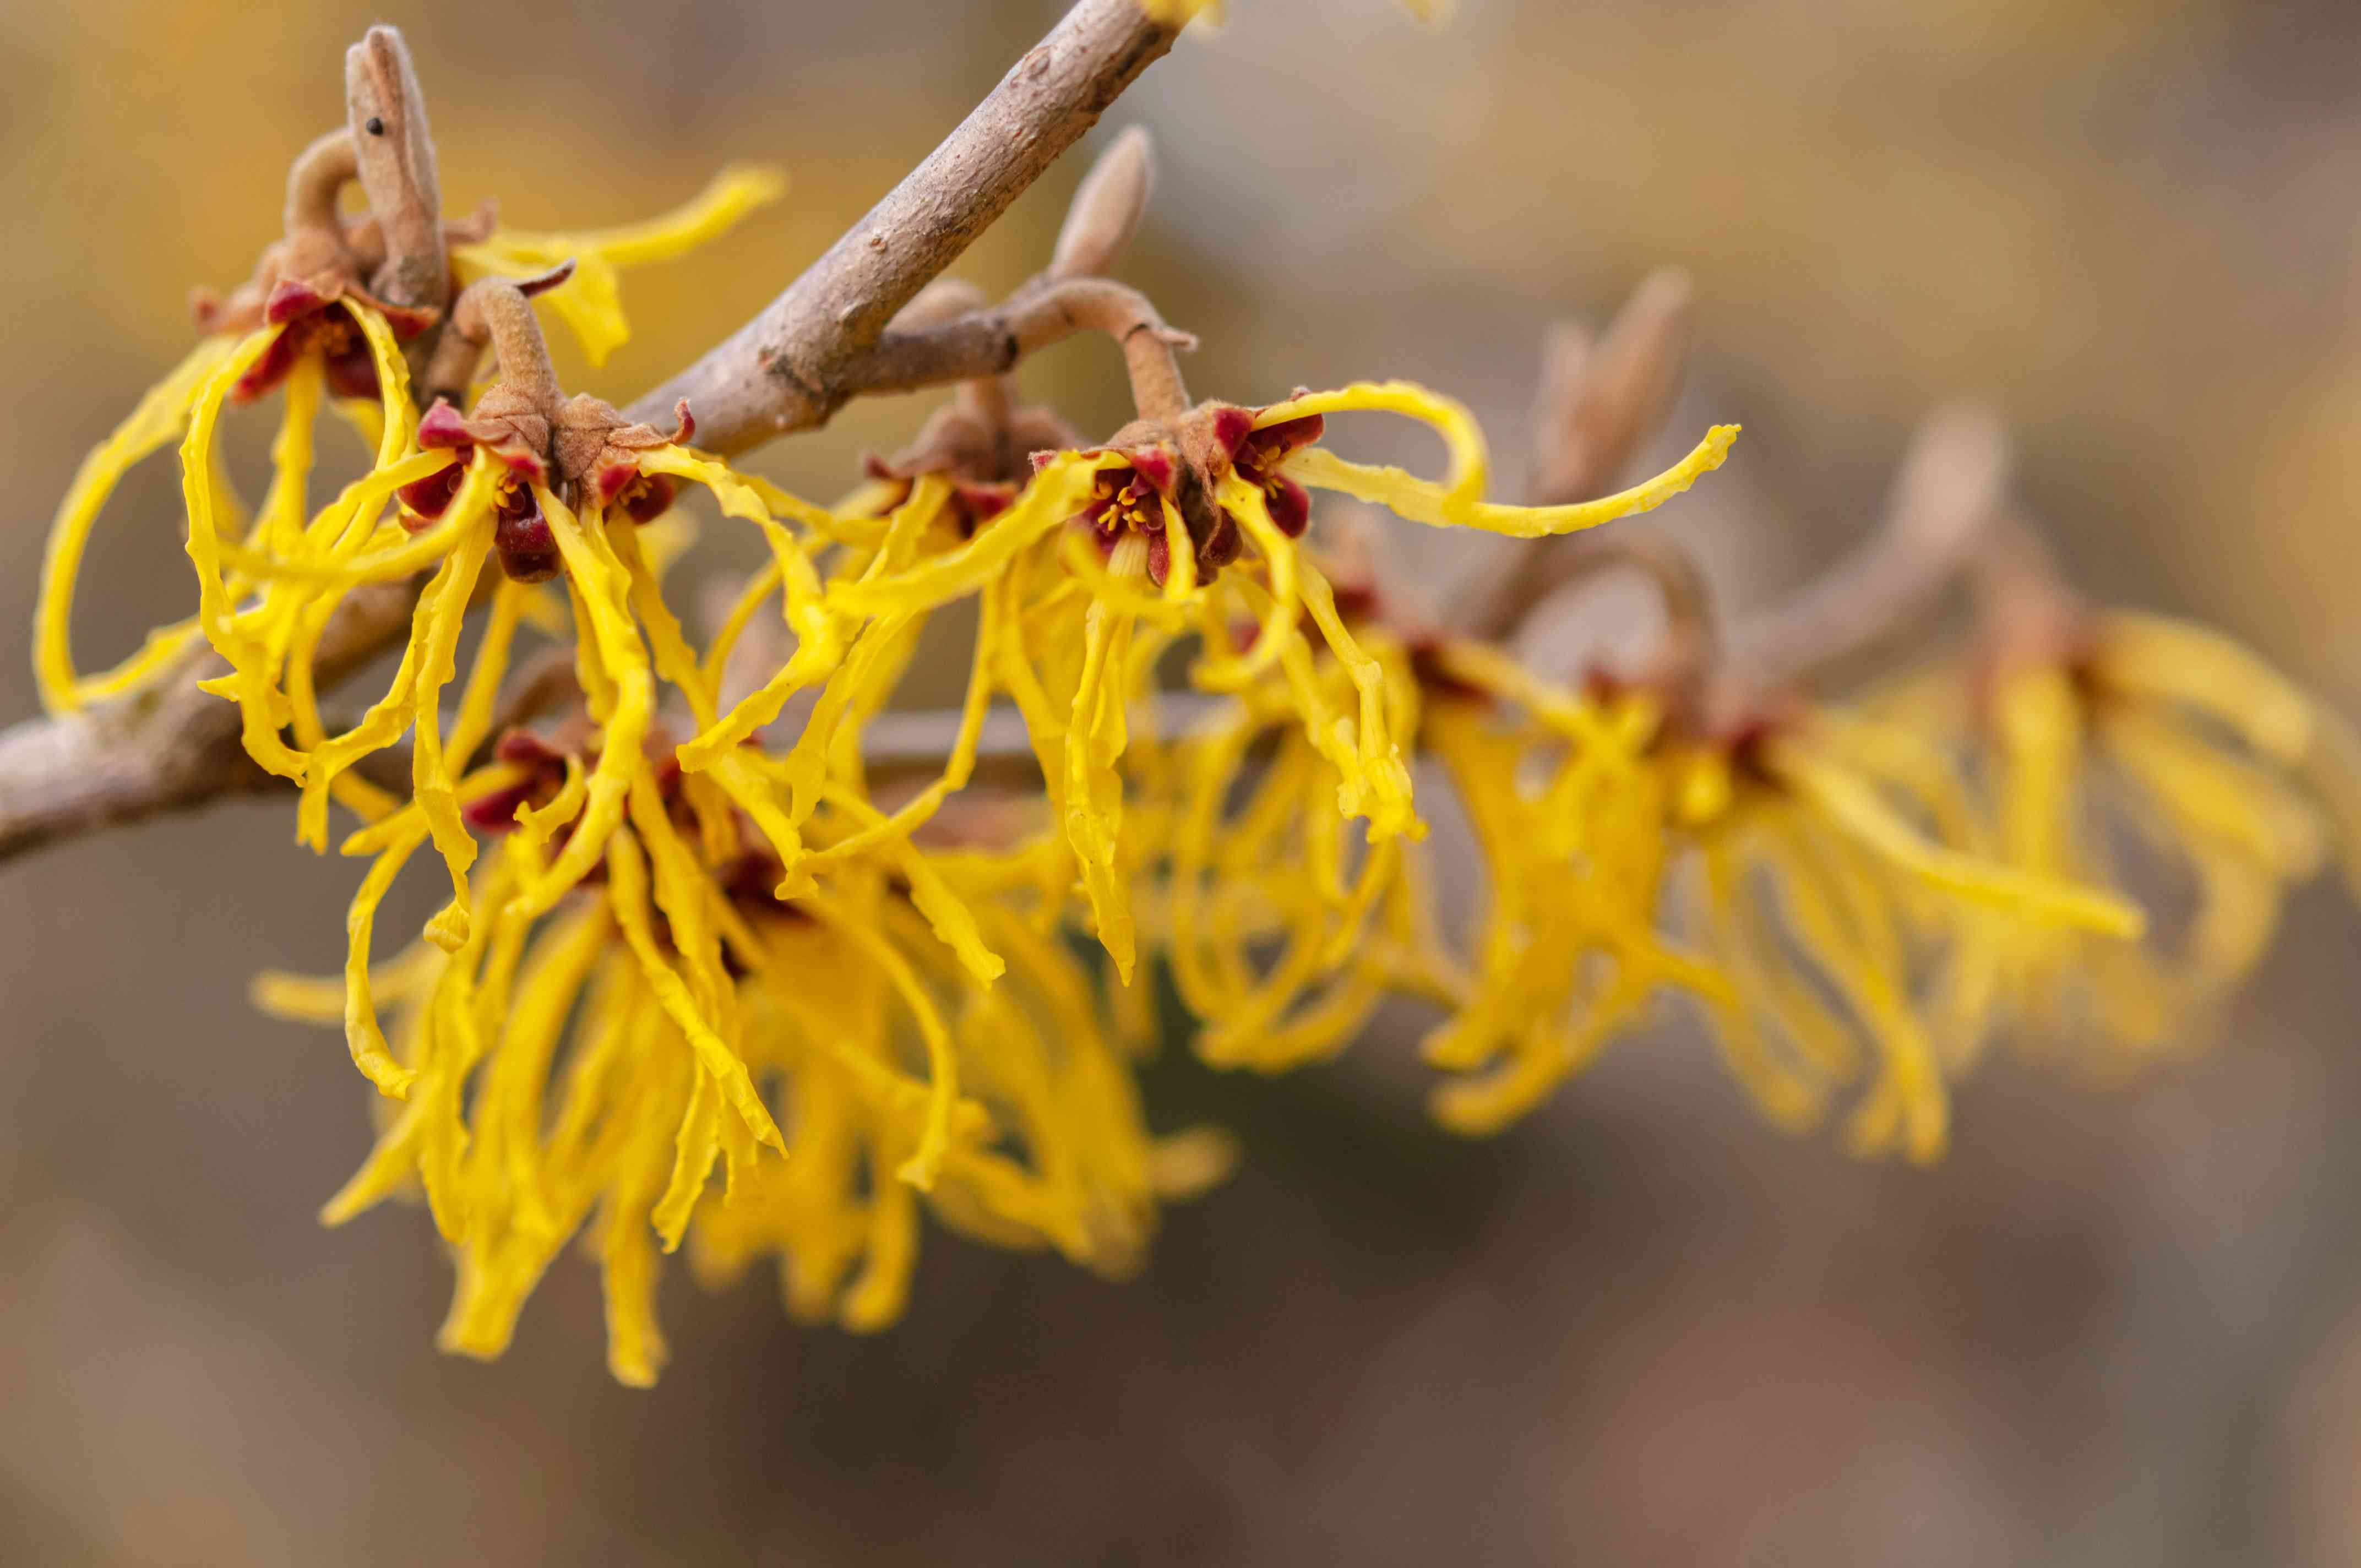 Vernalis witch hazel branch with yellow stringy flowers closeup